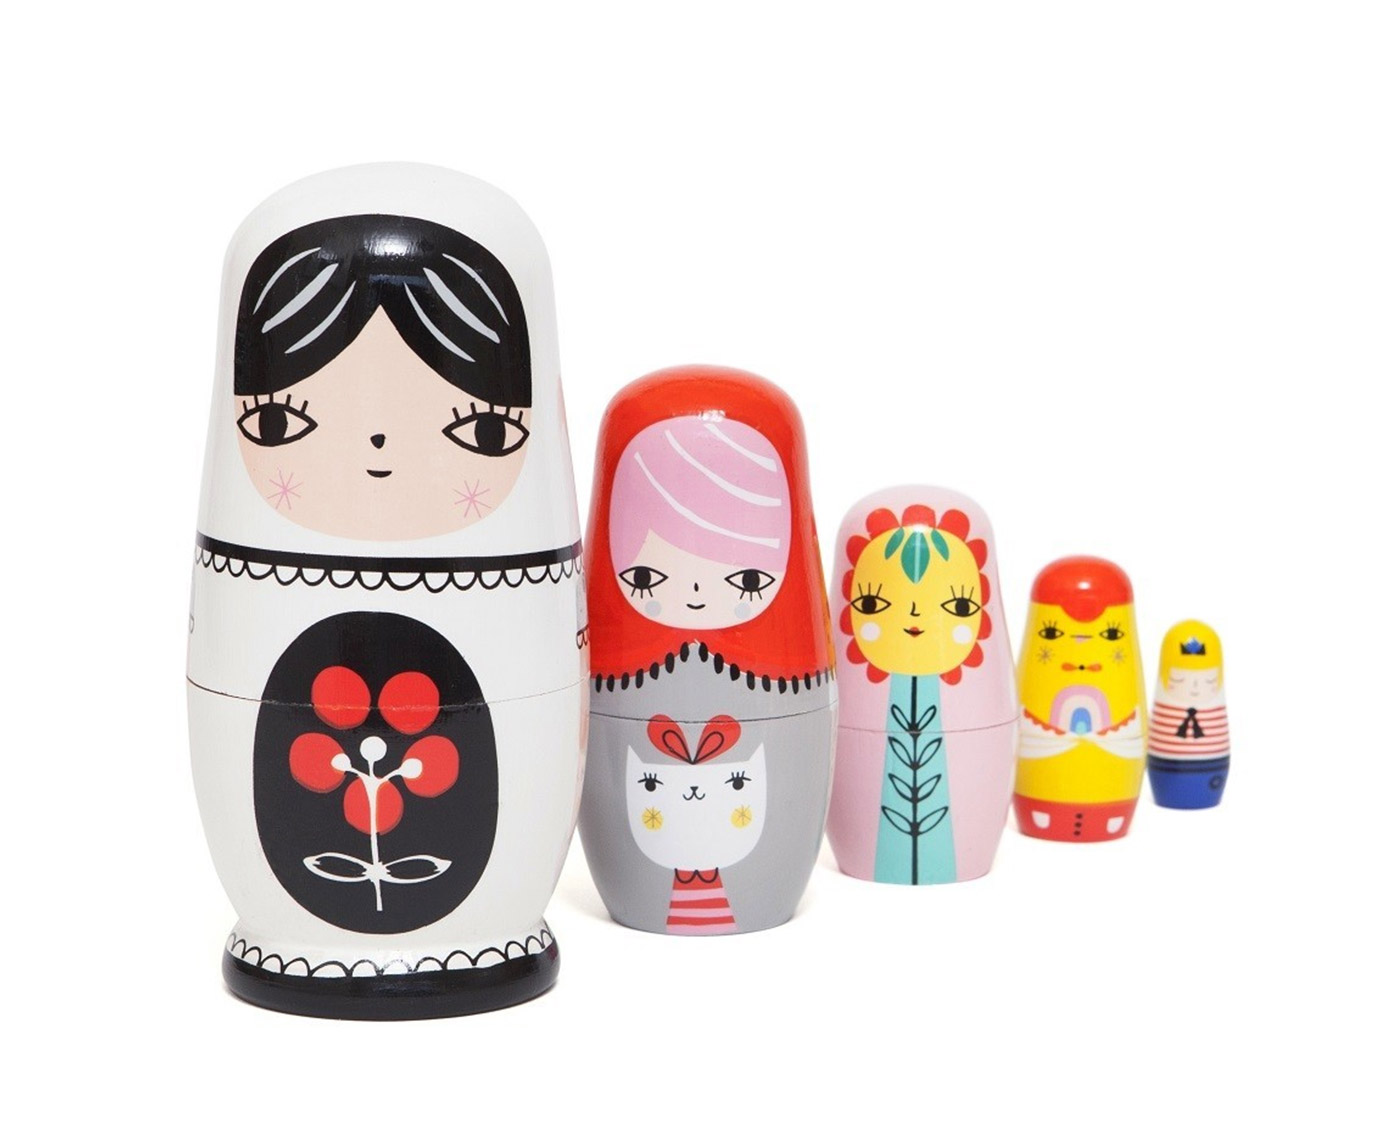 Nesting dolls 'Fleur and Friends'